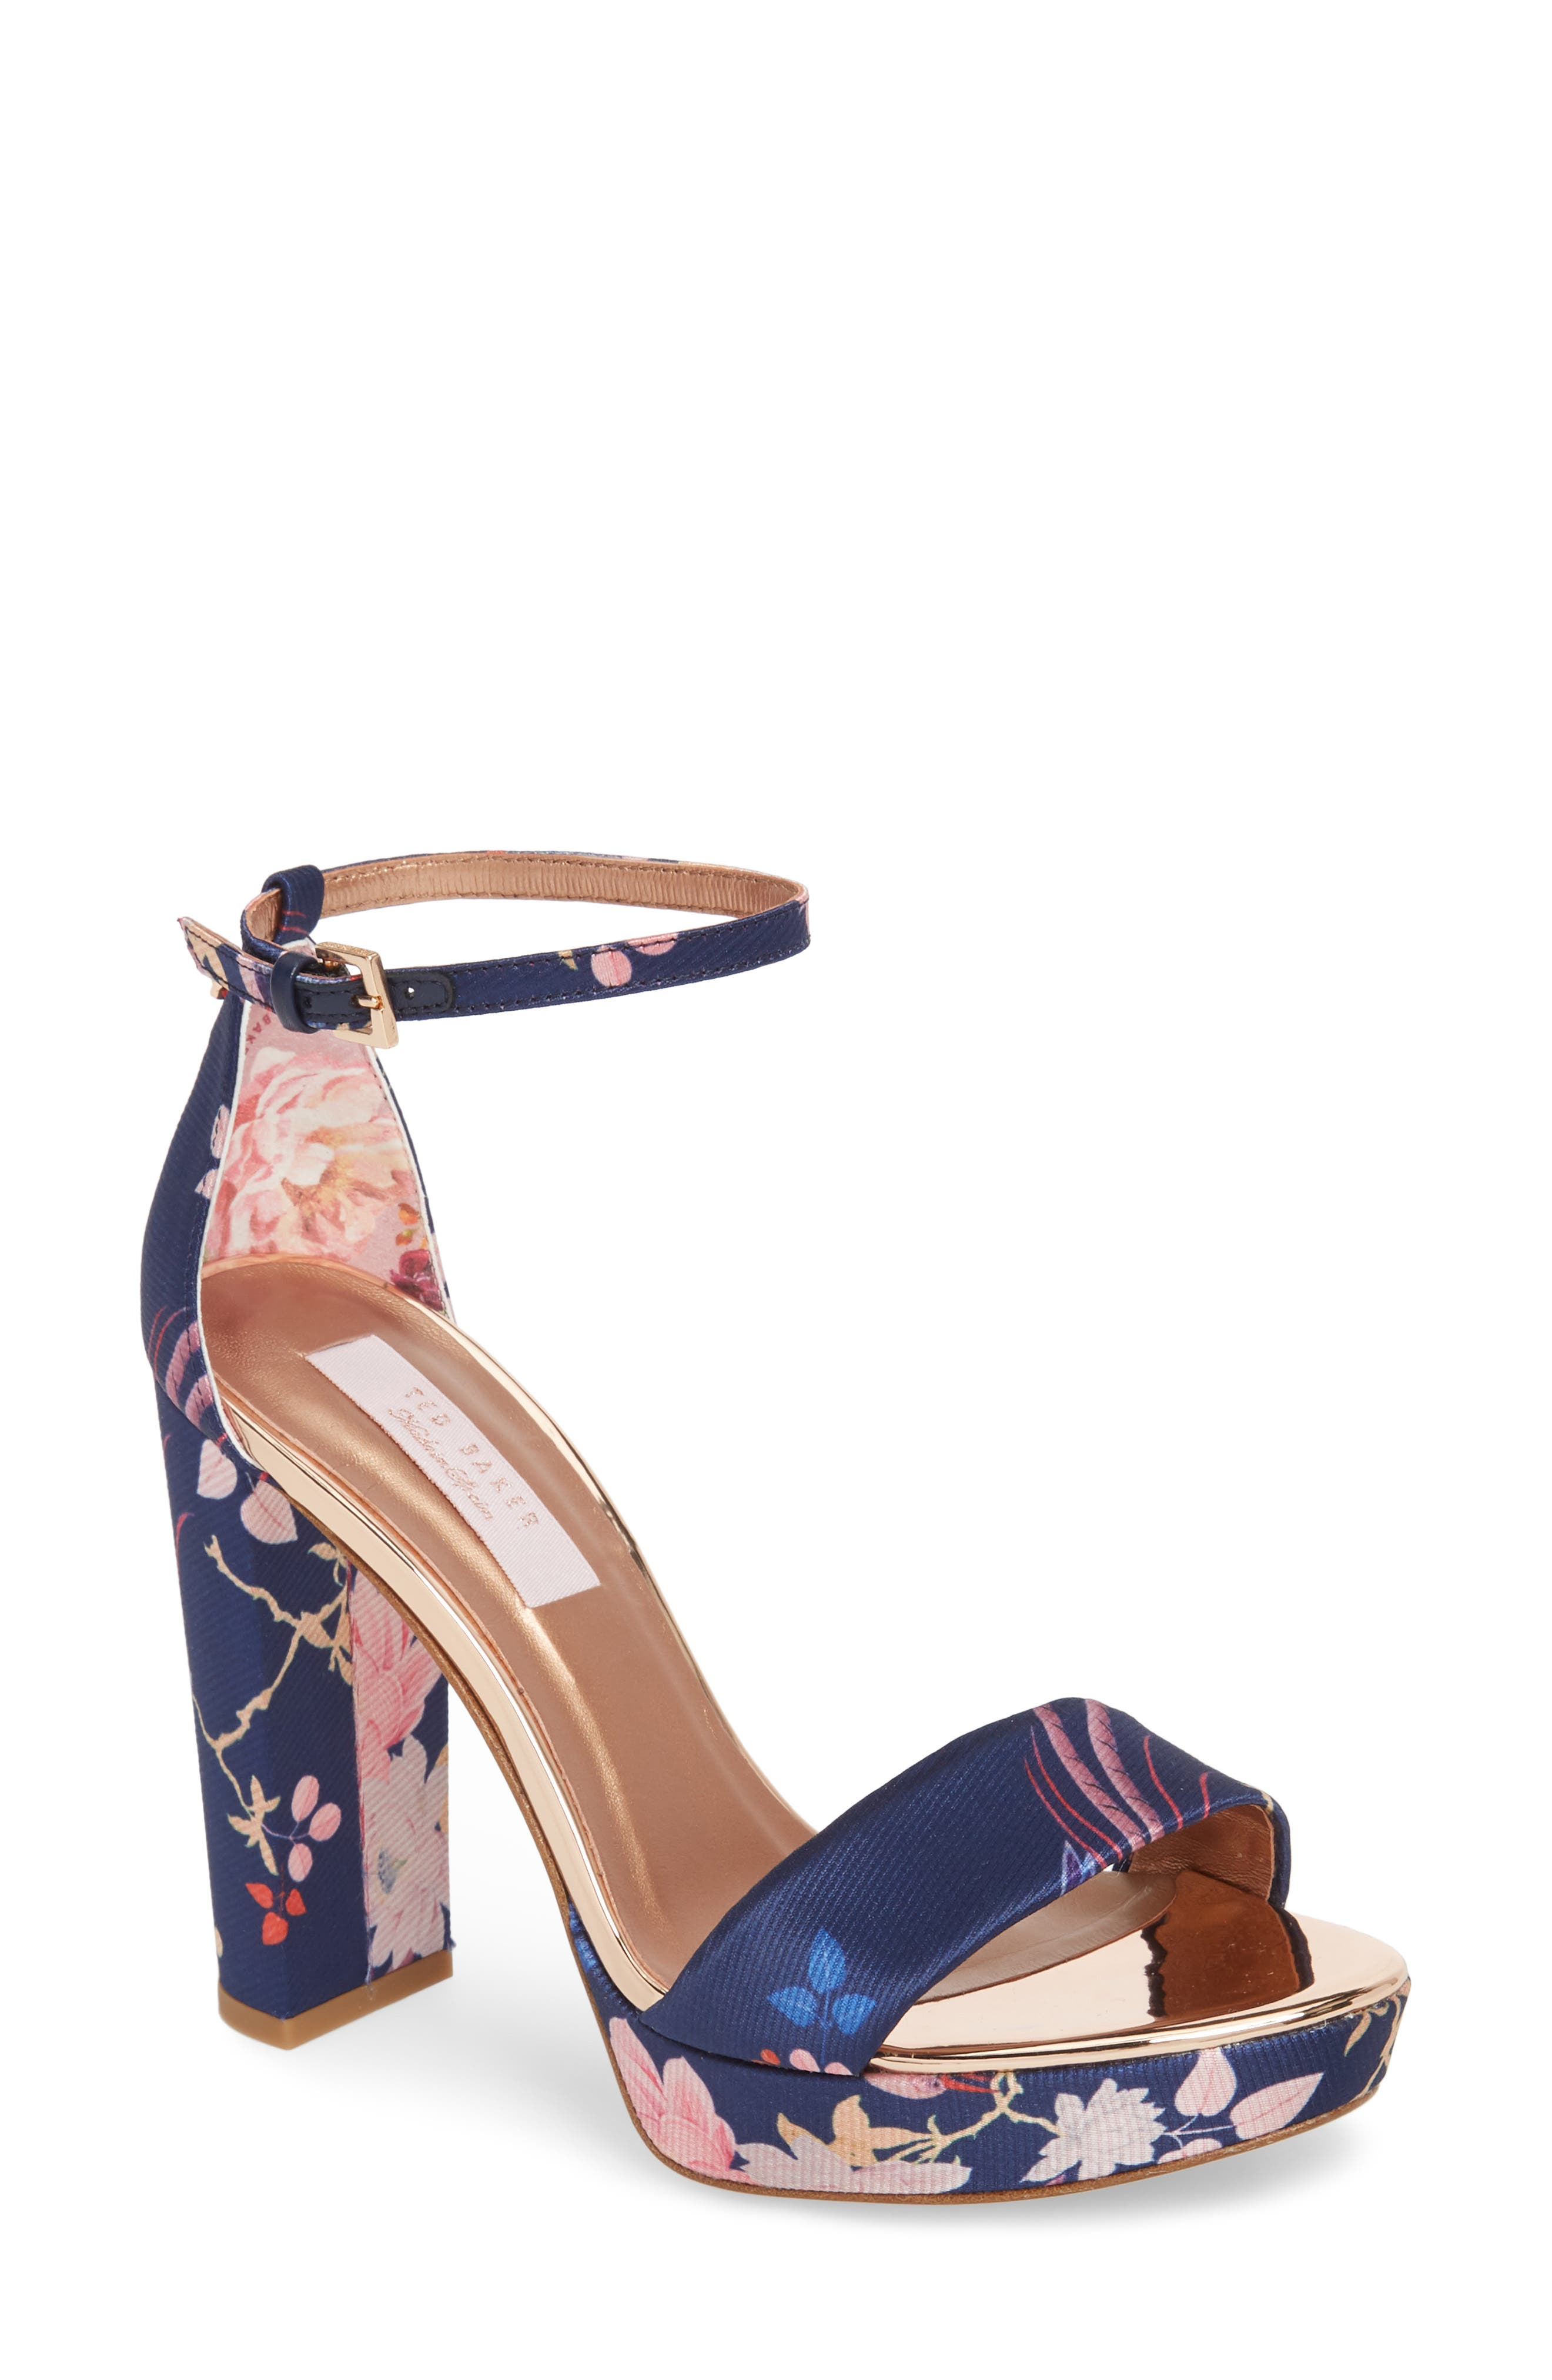 Junaa Sandal,                         Main,                         color, Navy Fabric